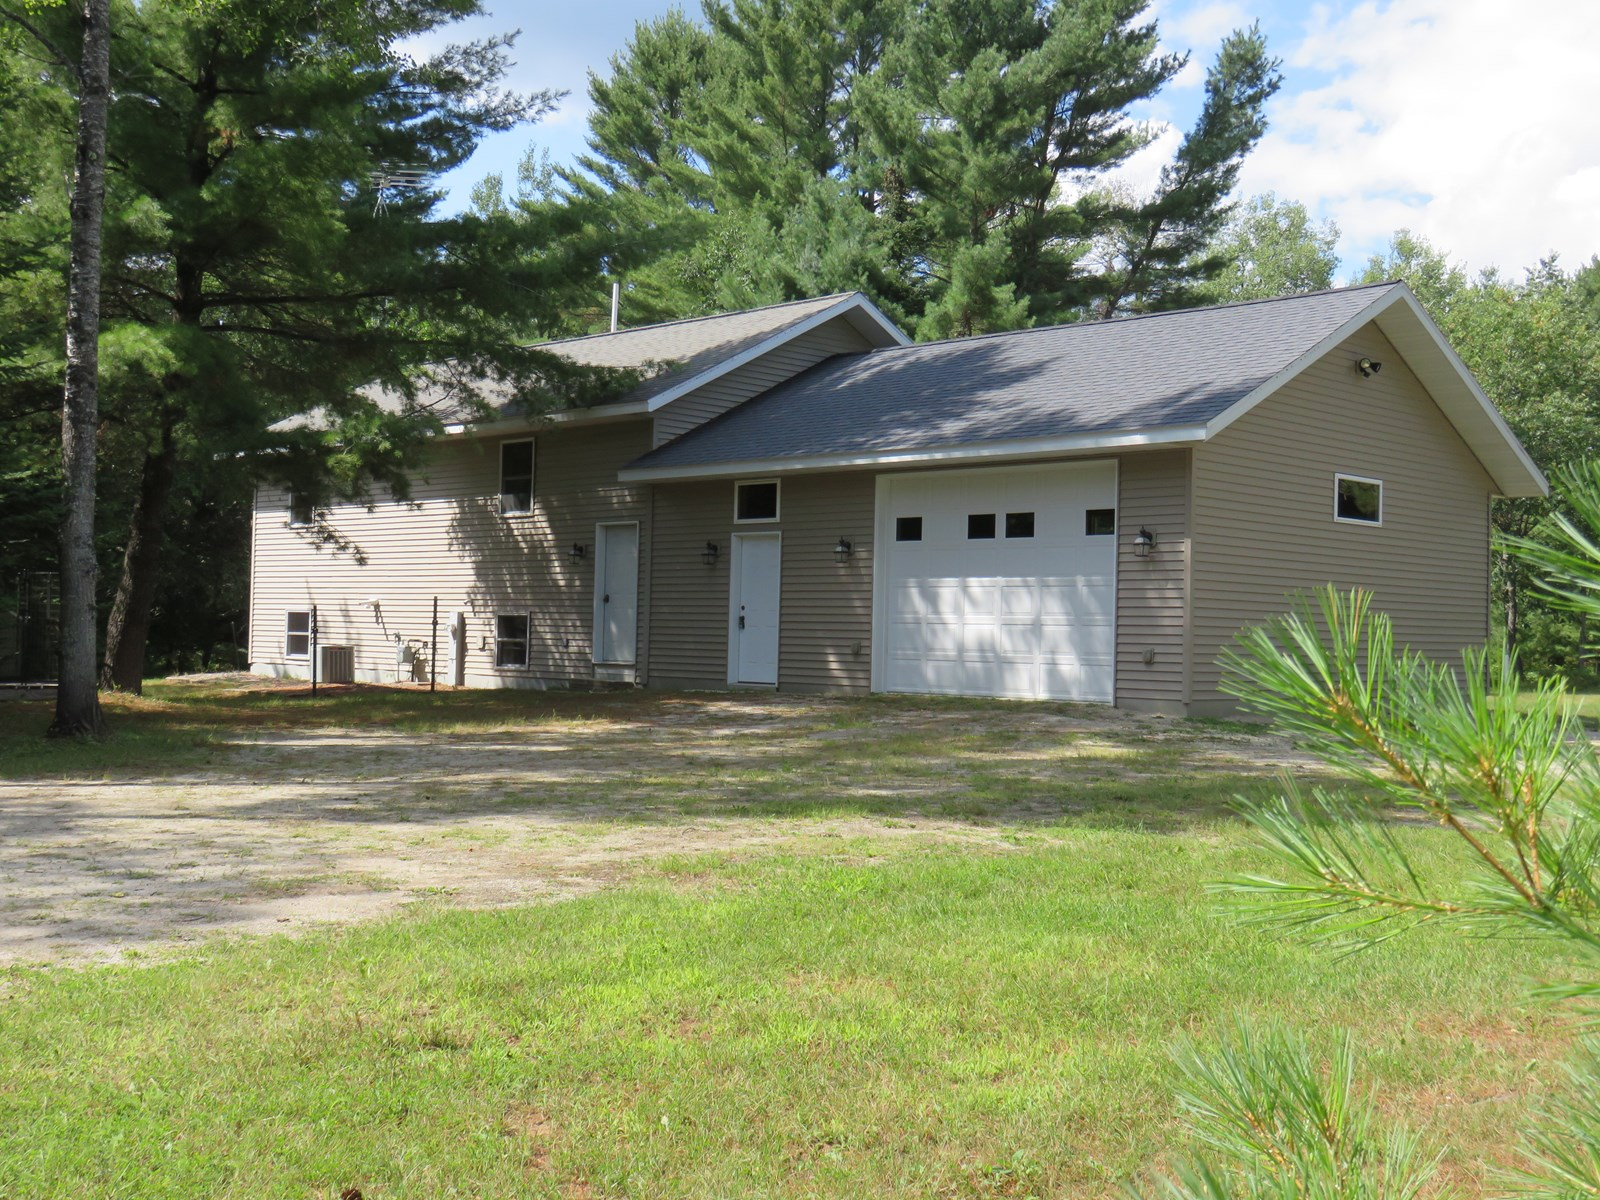 St. Germain, WI  4 Bedroom  Vacation Home For Sale